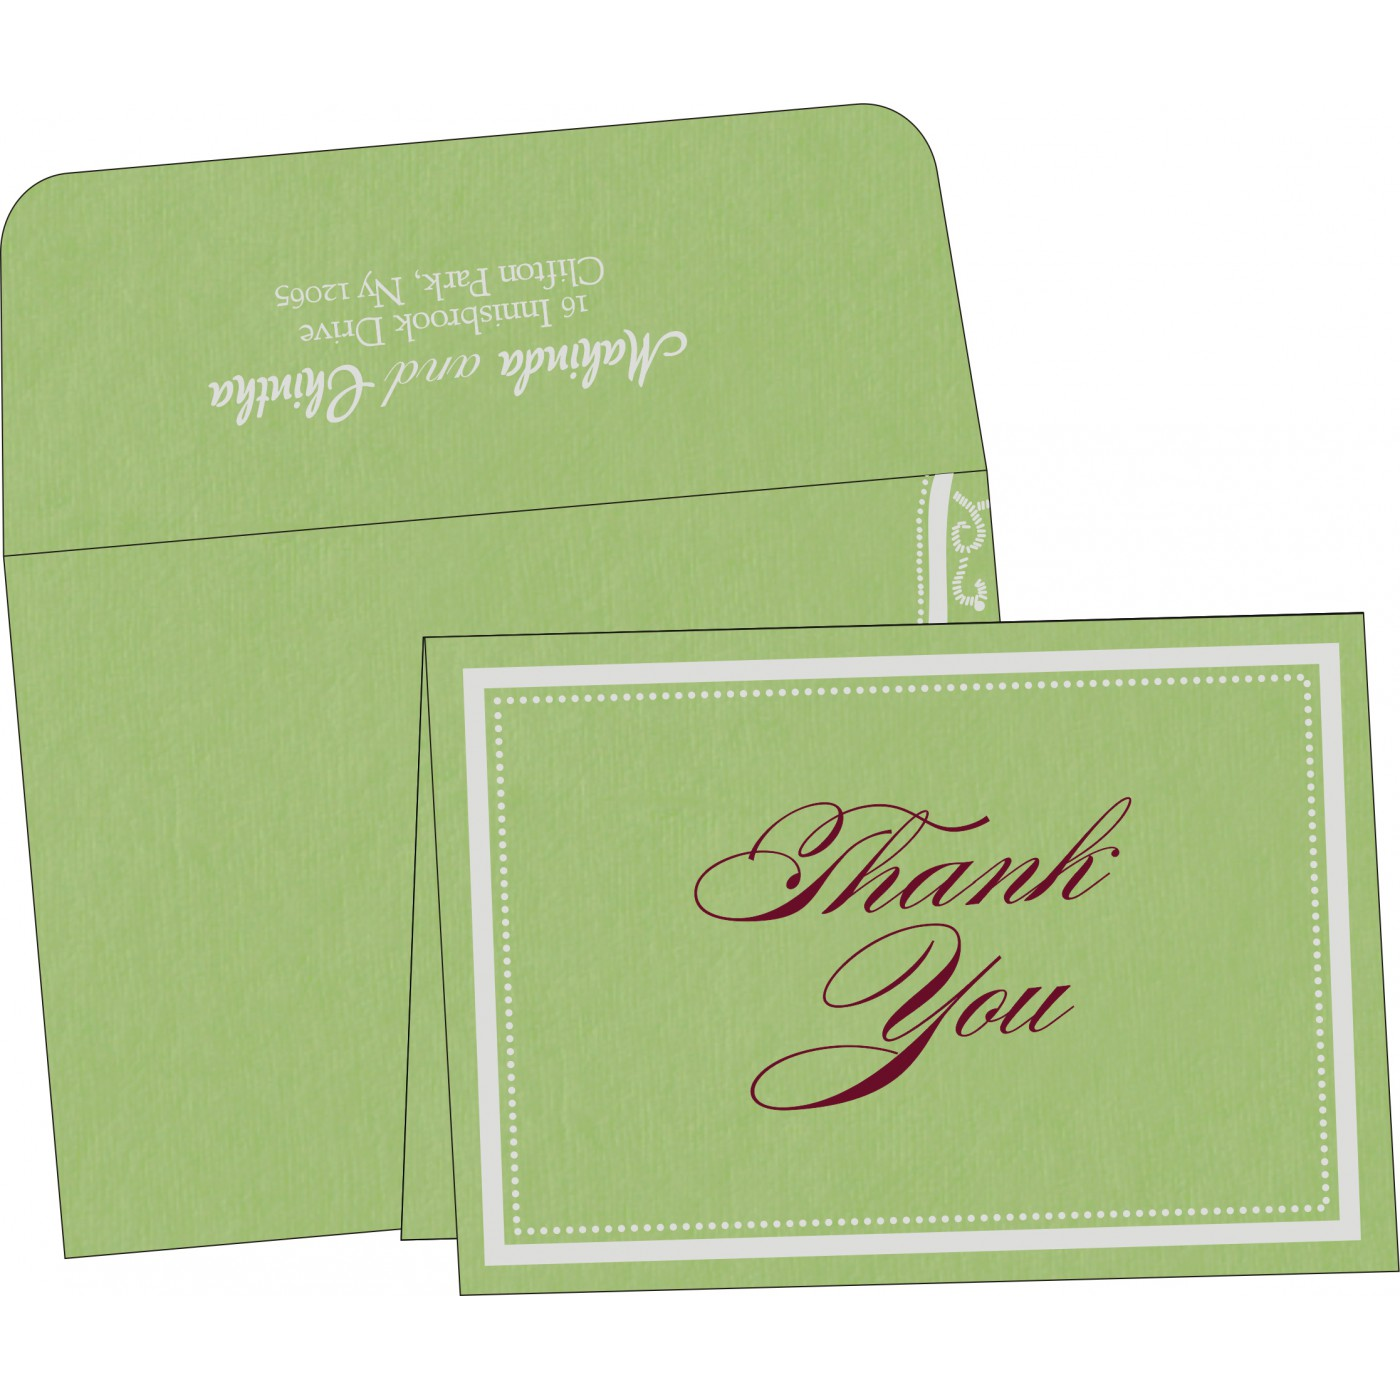 Thank You Cards - TYC-8219J